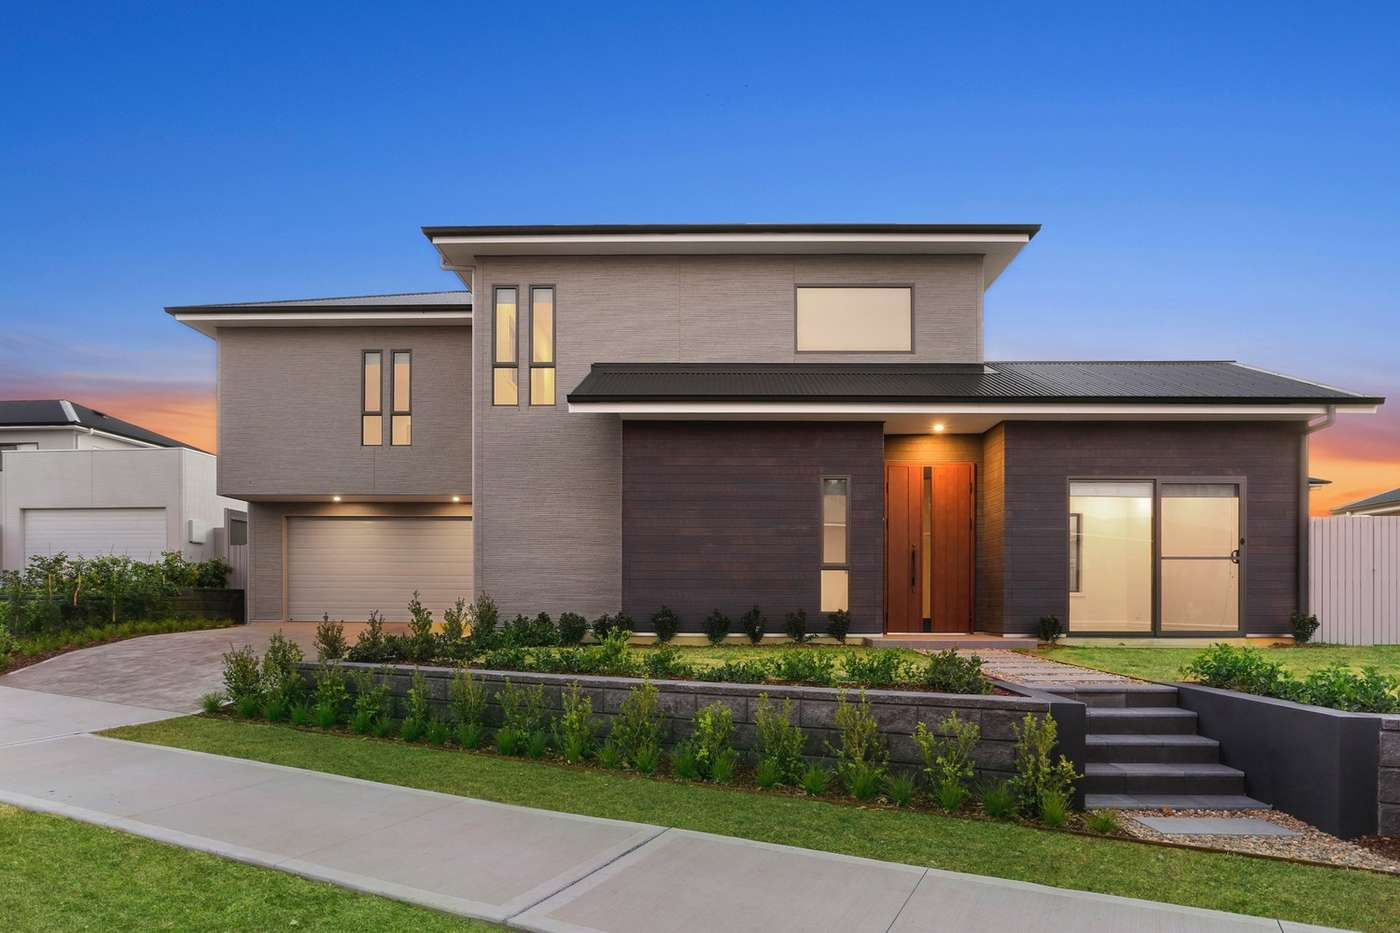 Main view of Homely house listing, 5 Haselgrove Street, Gledswood Hills, NSW 2557